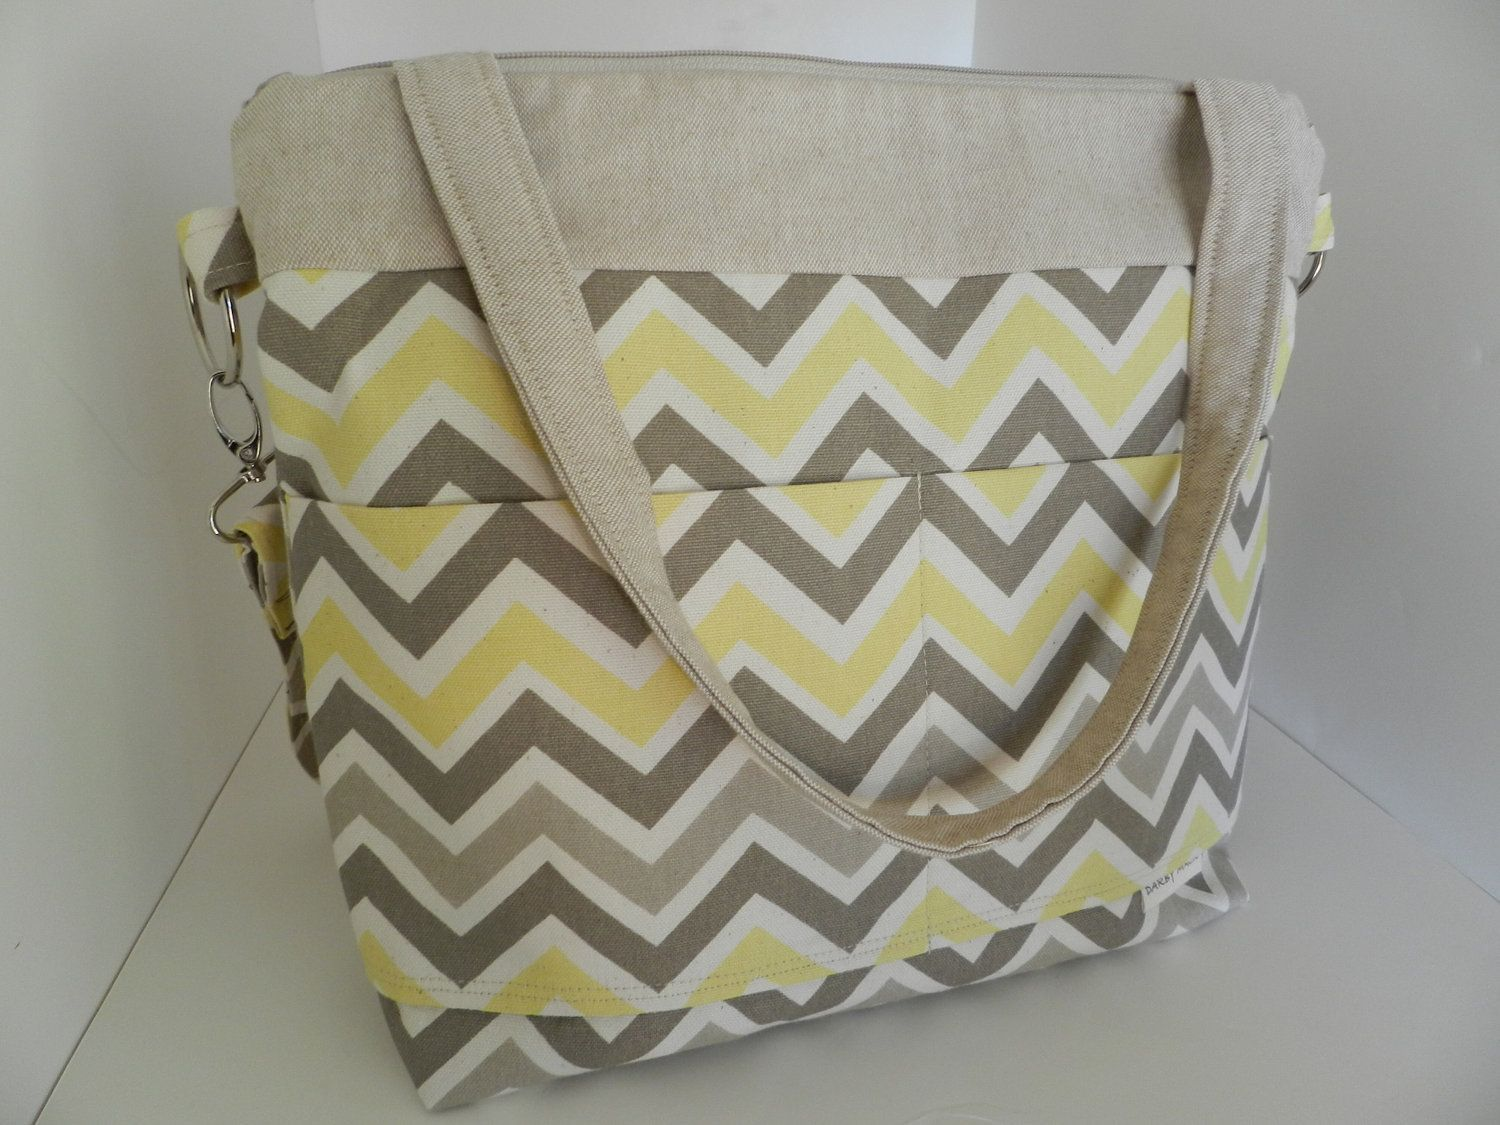 CAMERA Bag with / Removable Padded Photo gear Insert  in Yellow and Gray Chevron, diaper bag, purse,  messenger.   Darby Mack Designs. $99.00, via Etsy.